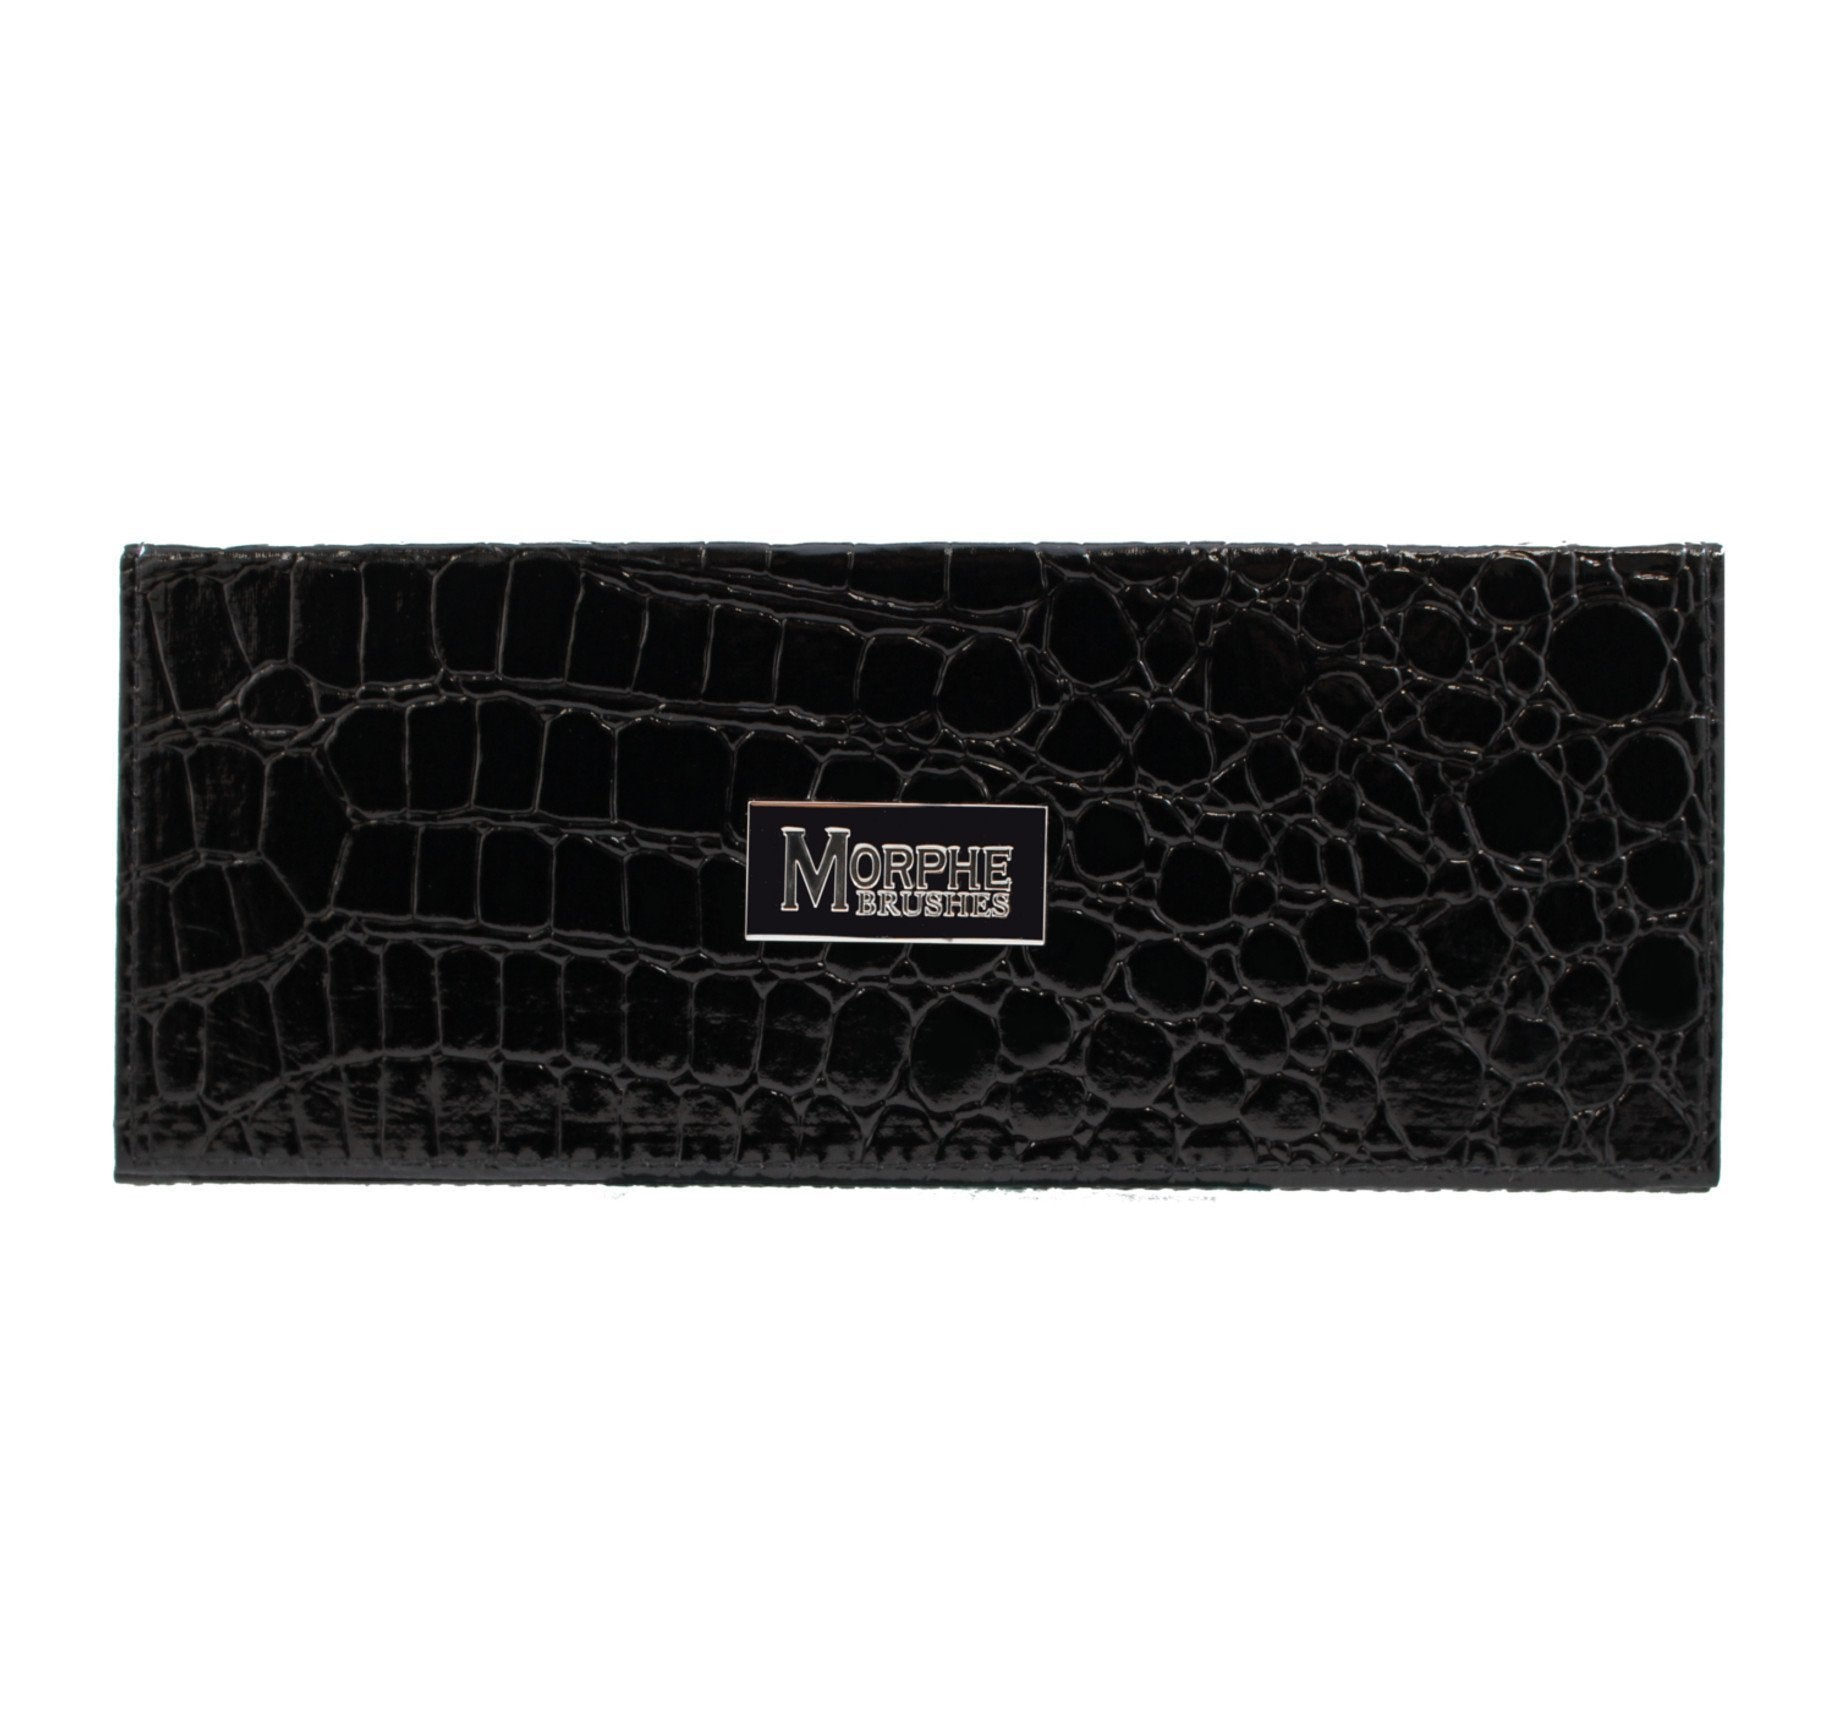 HH- SQUARE SNAKESKIN CASE, view larger image